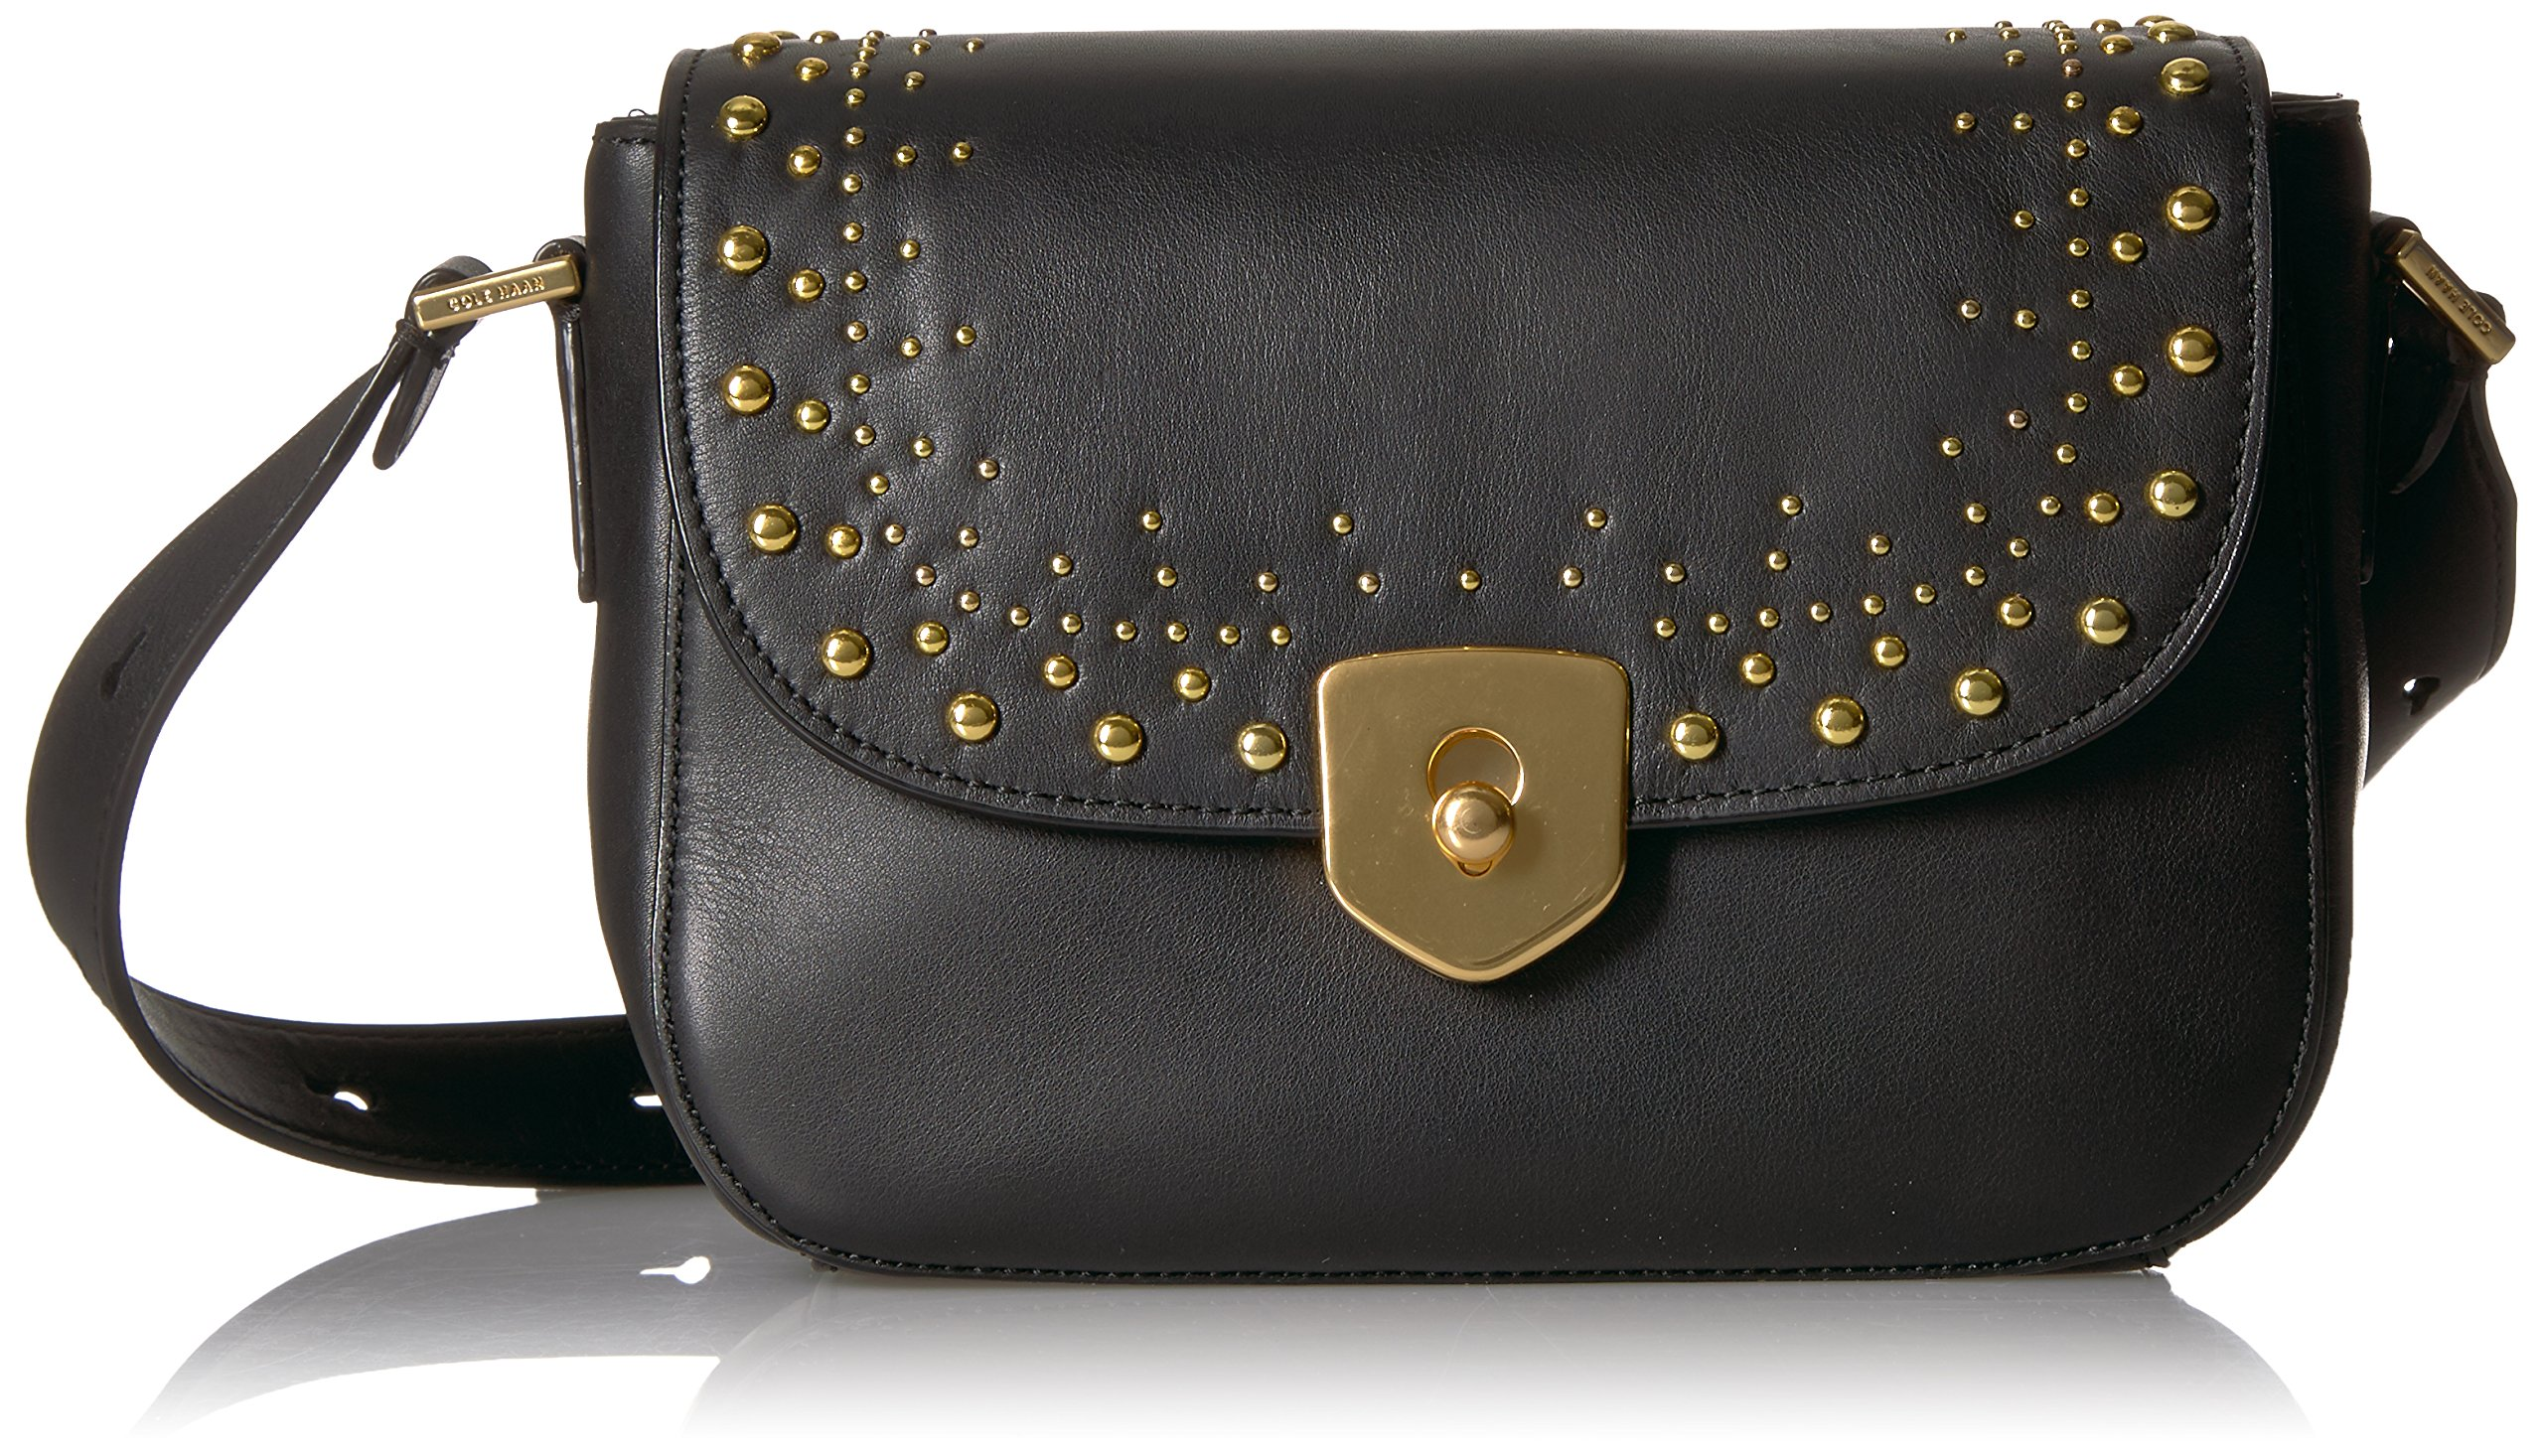 Cole Haan Marli Studding Mini Saddle, black, One Size by Cole Haan